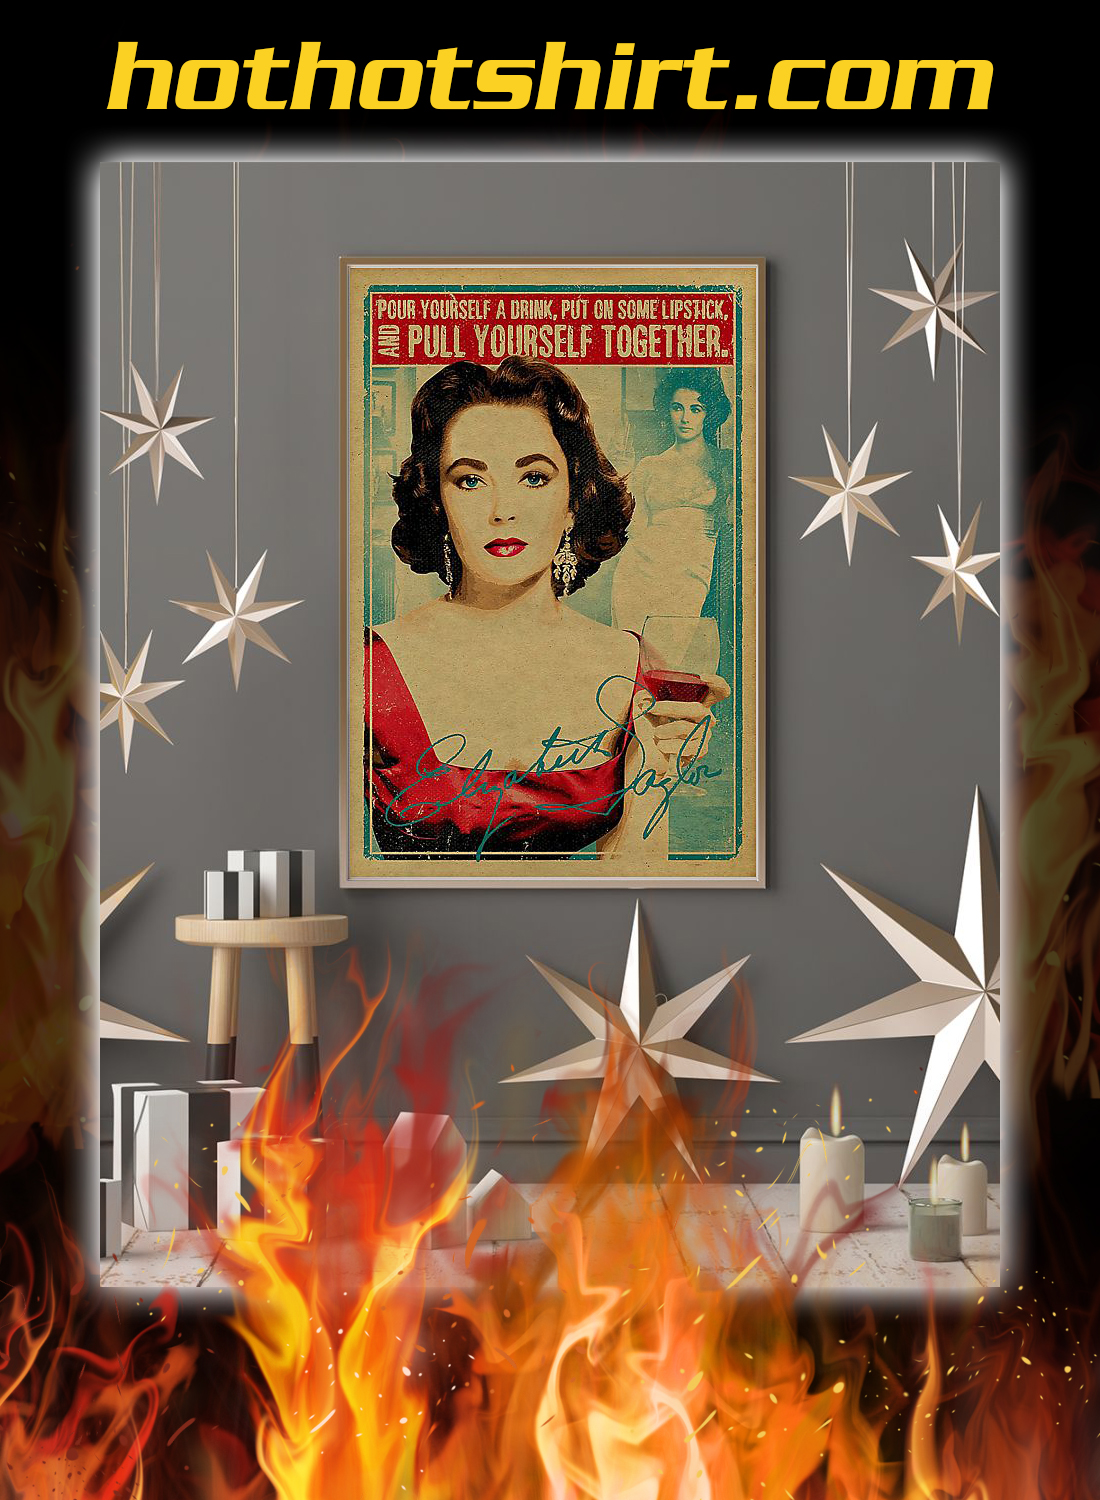 Elizabeth taylor pour yourself a drink put on some lipstick poster 3